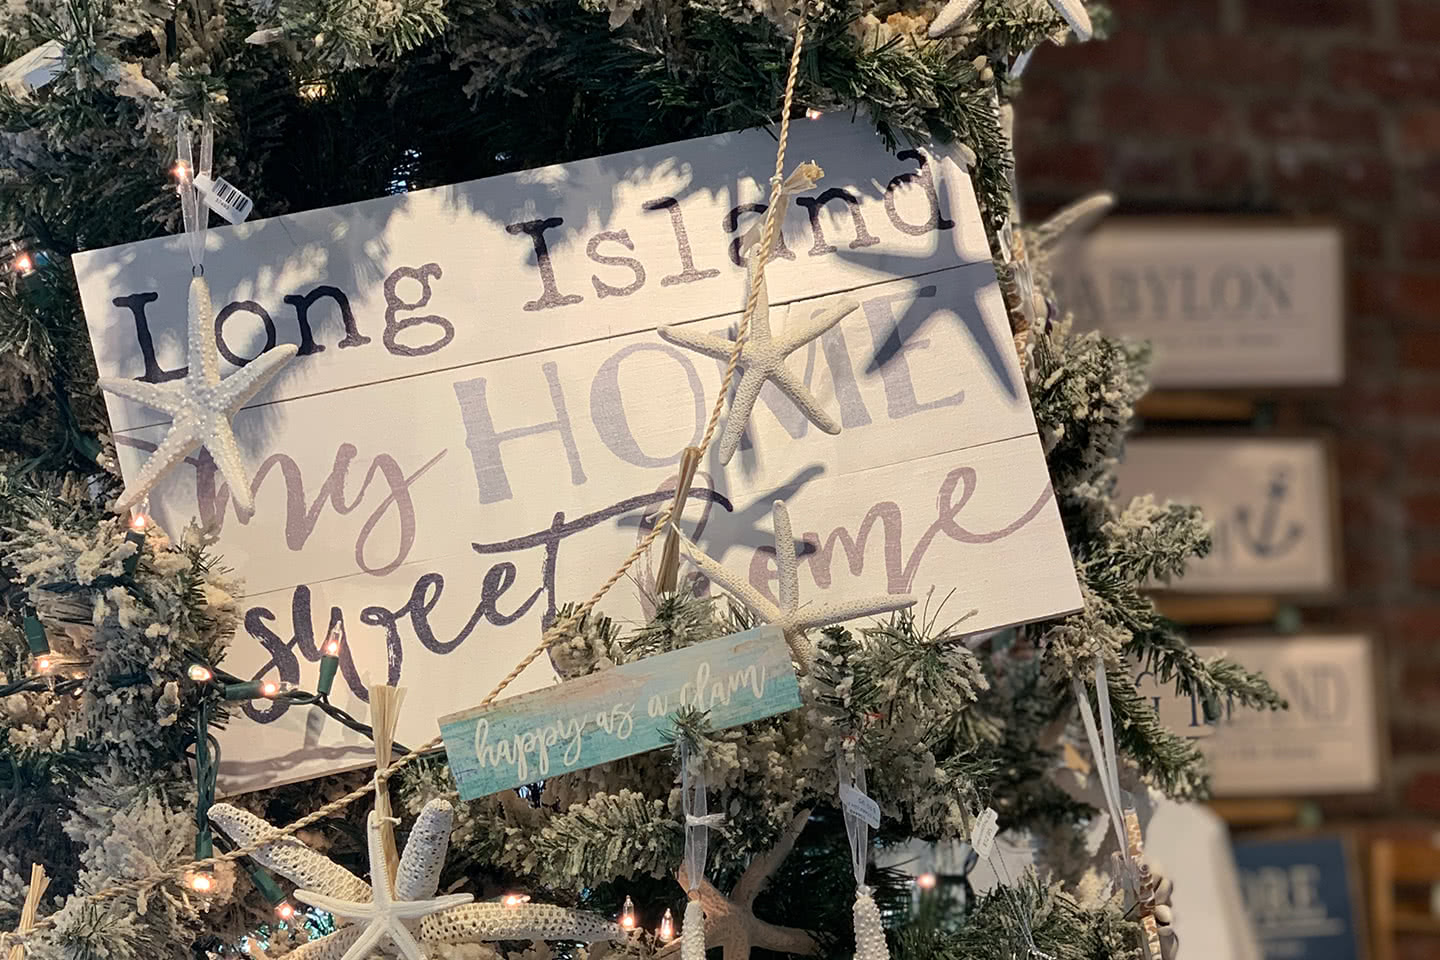 Long Island My Home Sweet Home Holiday Sign and Starfish Ornaments on a Christmas Tree